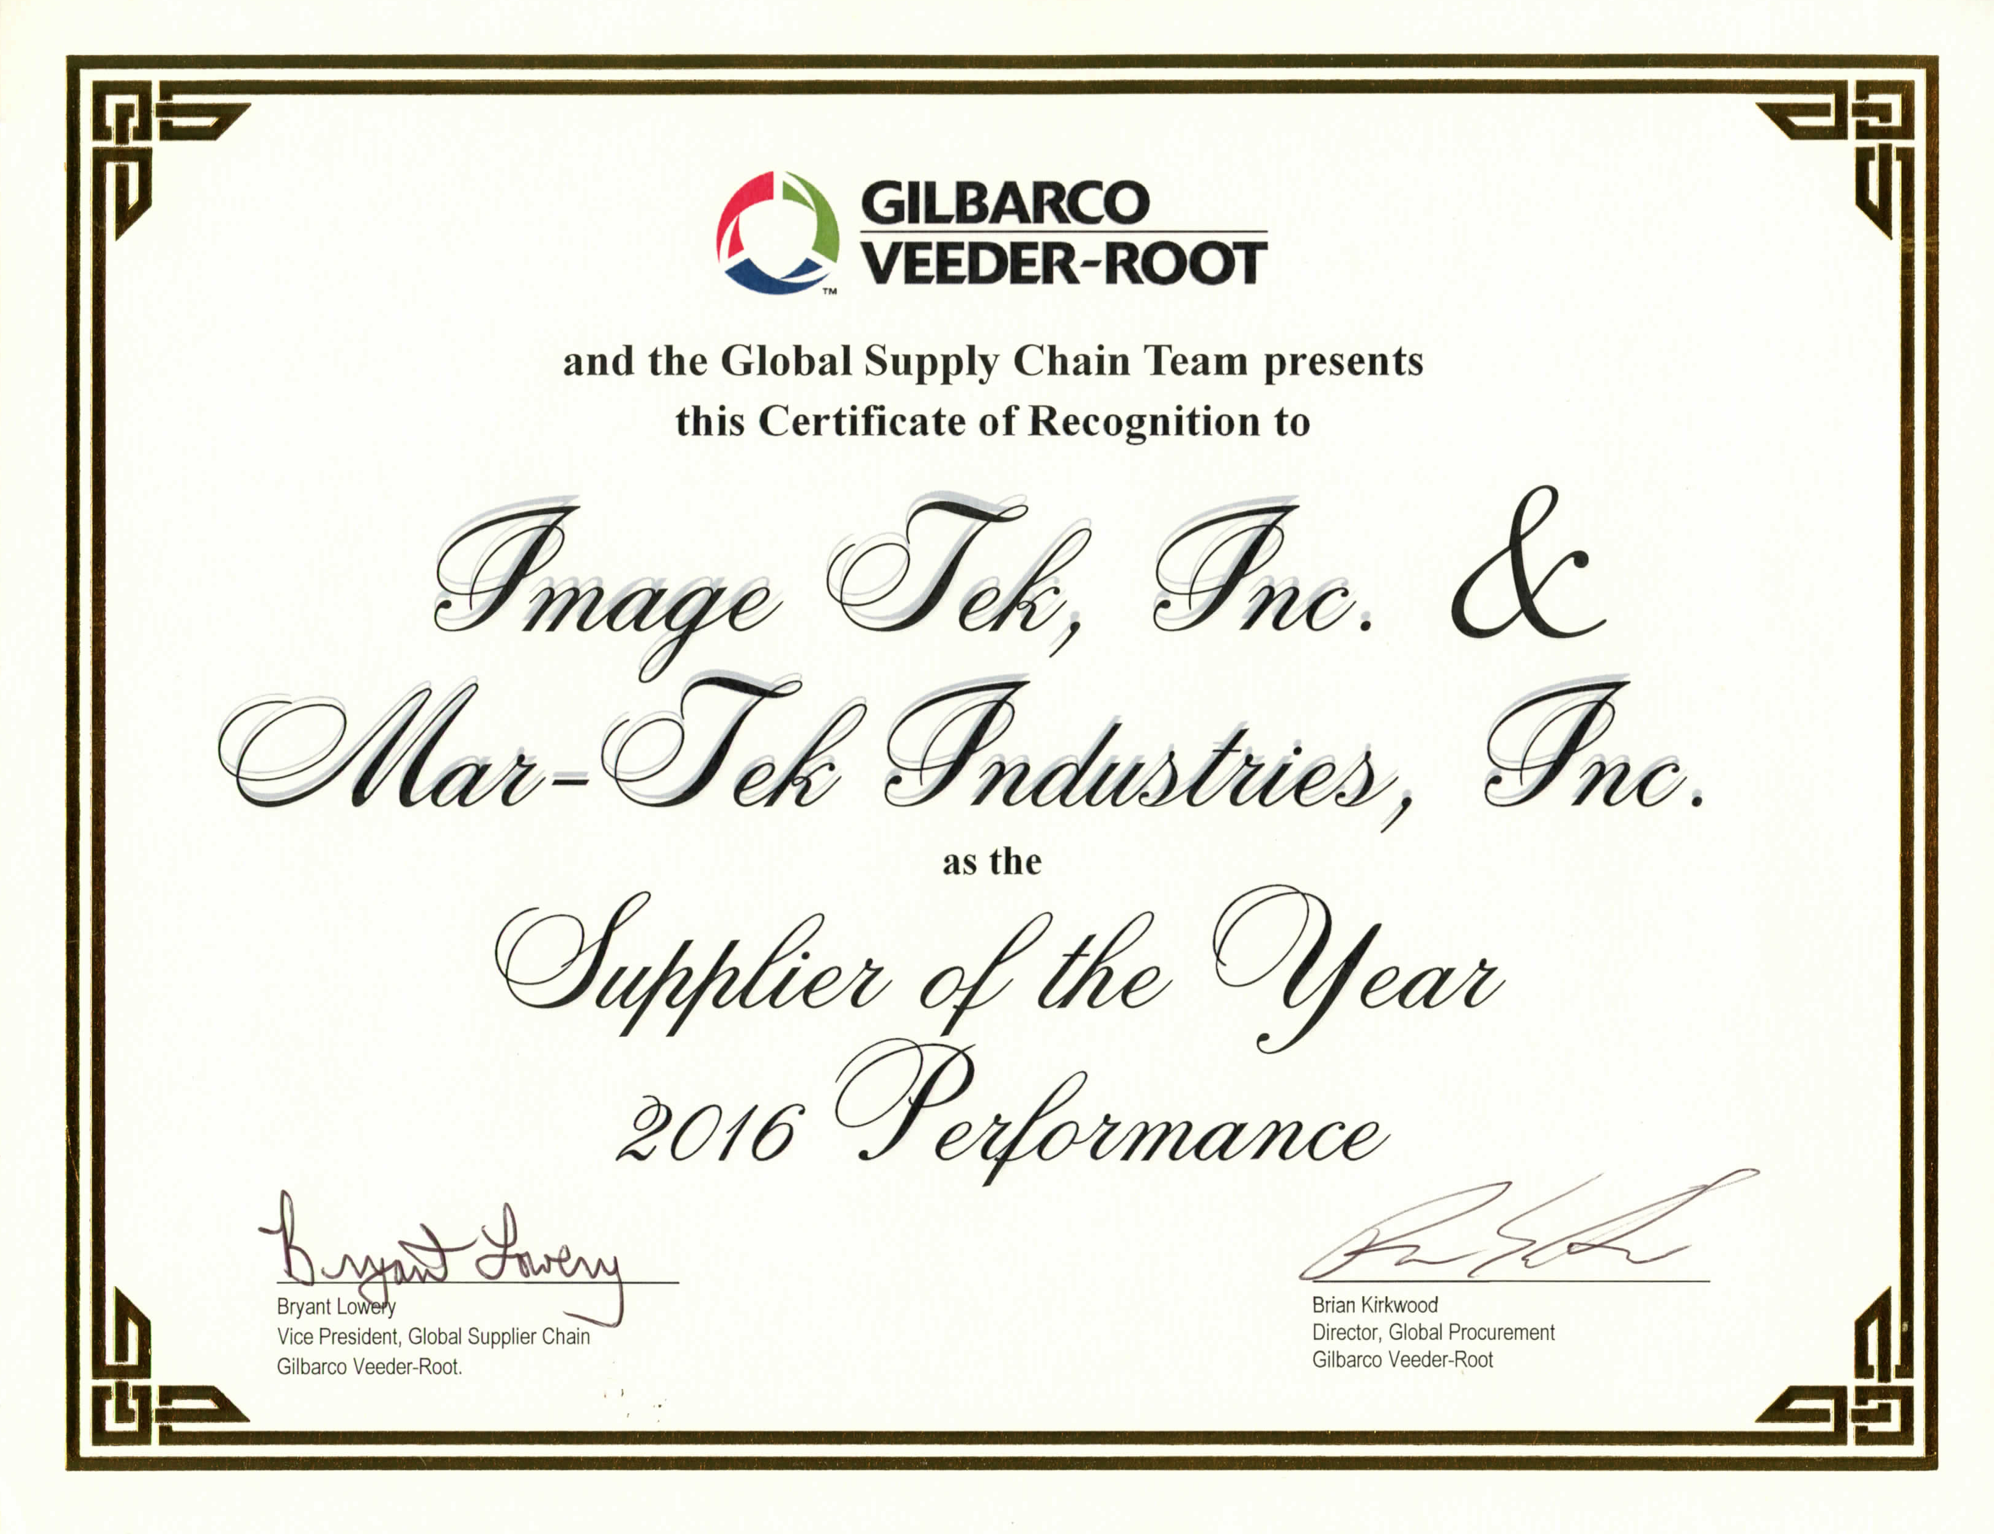 Gilbarco veeder root presents certificate of recognition mar tek gilbarco veeder root presents certificate of recognition mar tek industries 1betcityfo Images